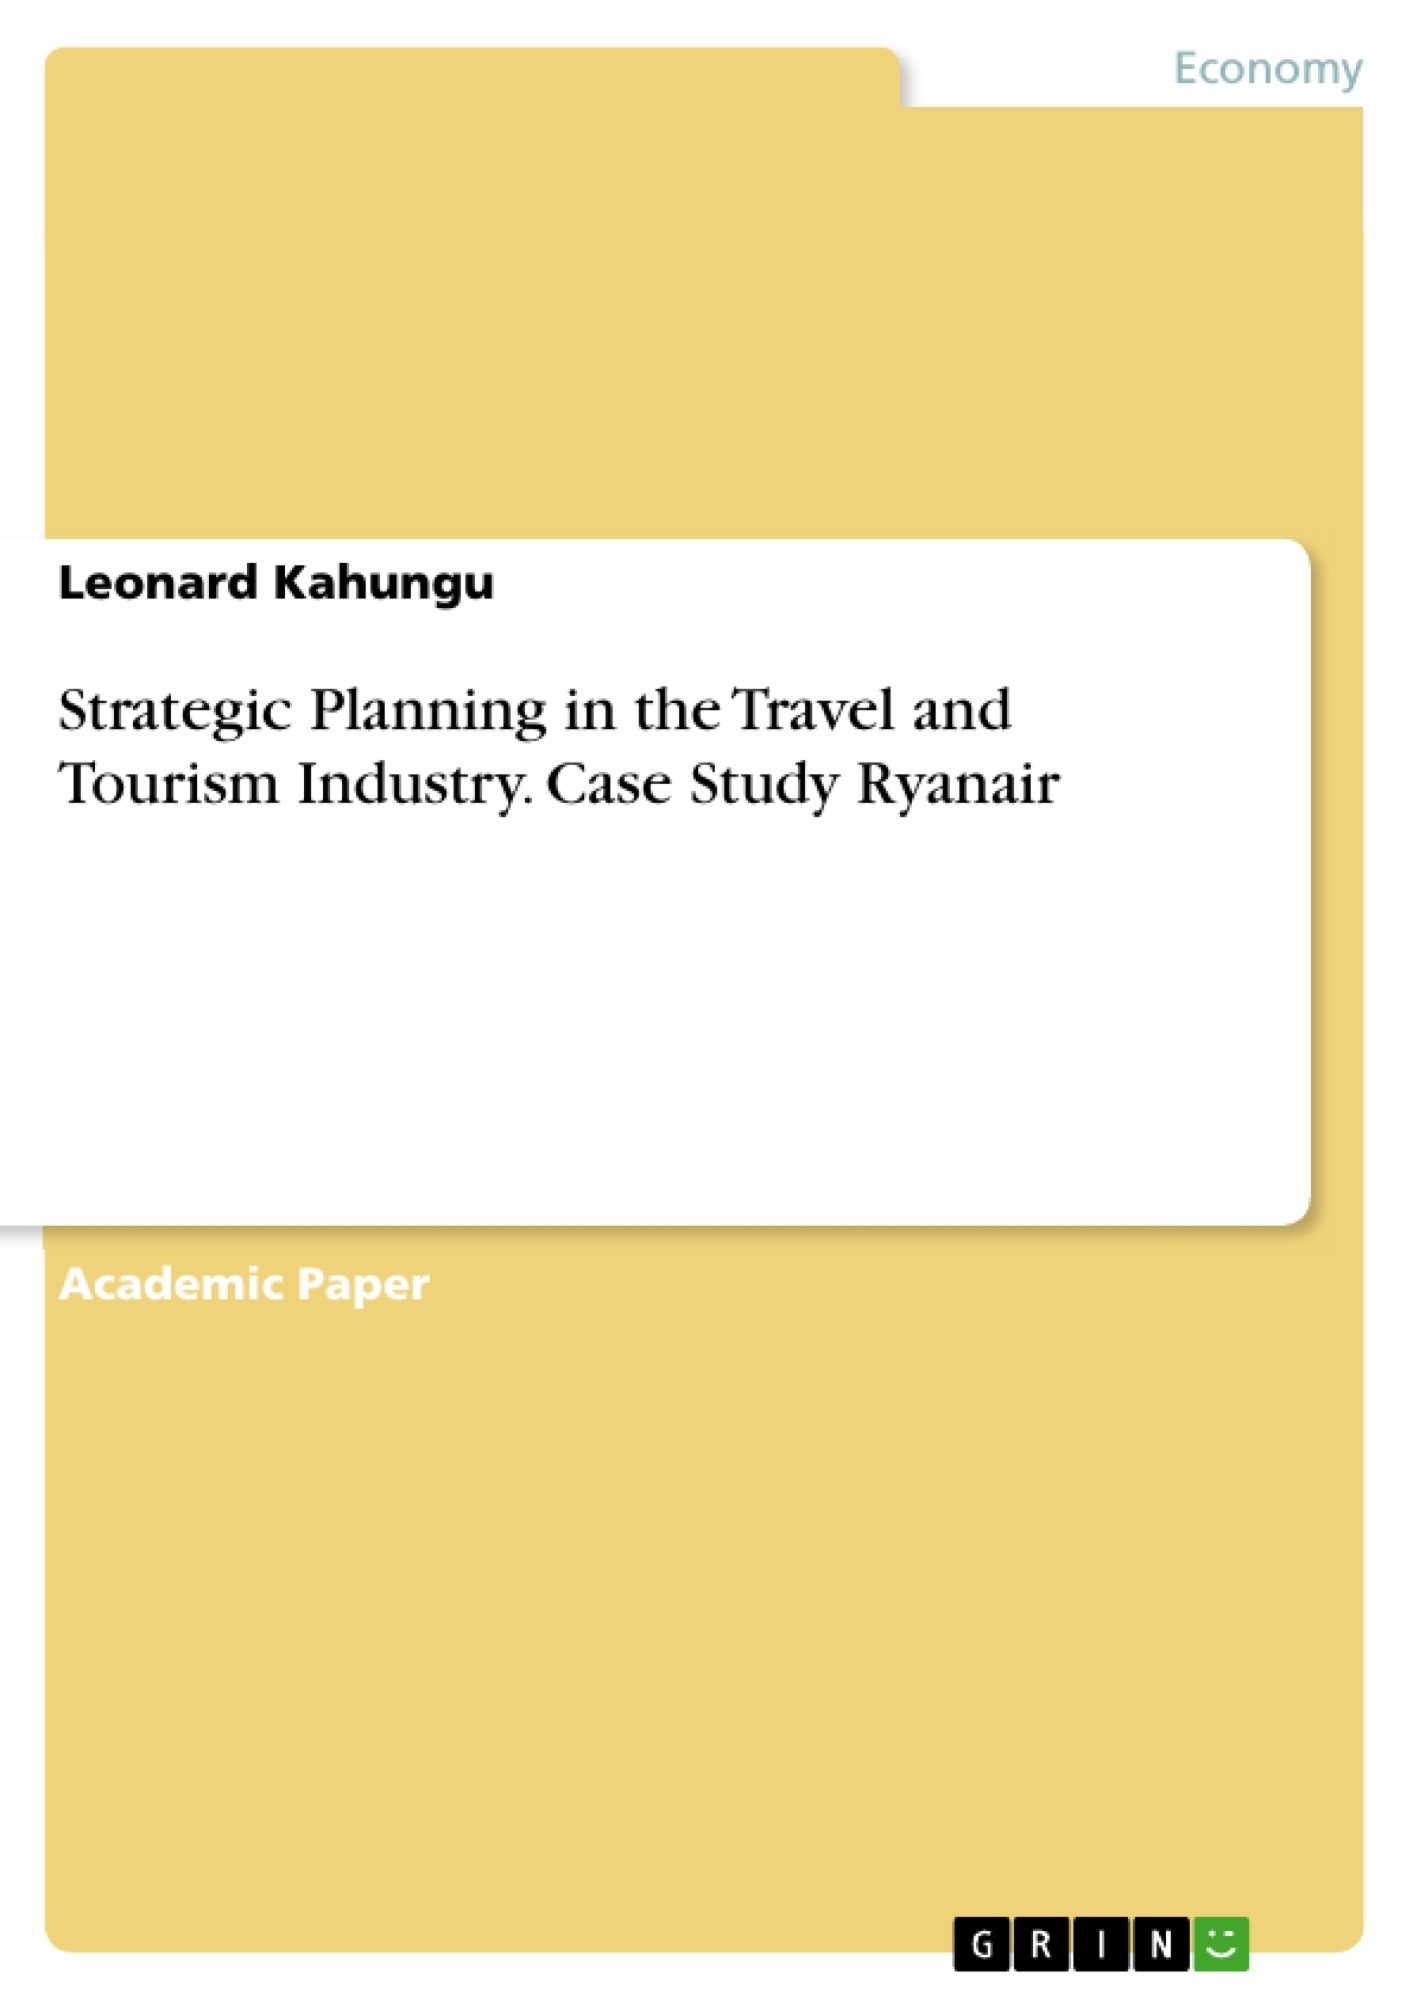 Title: Strategic Planning in the Travel and Tourism Industry. Case Study Ryanair